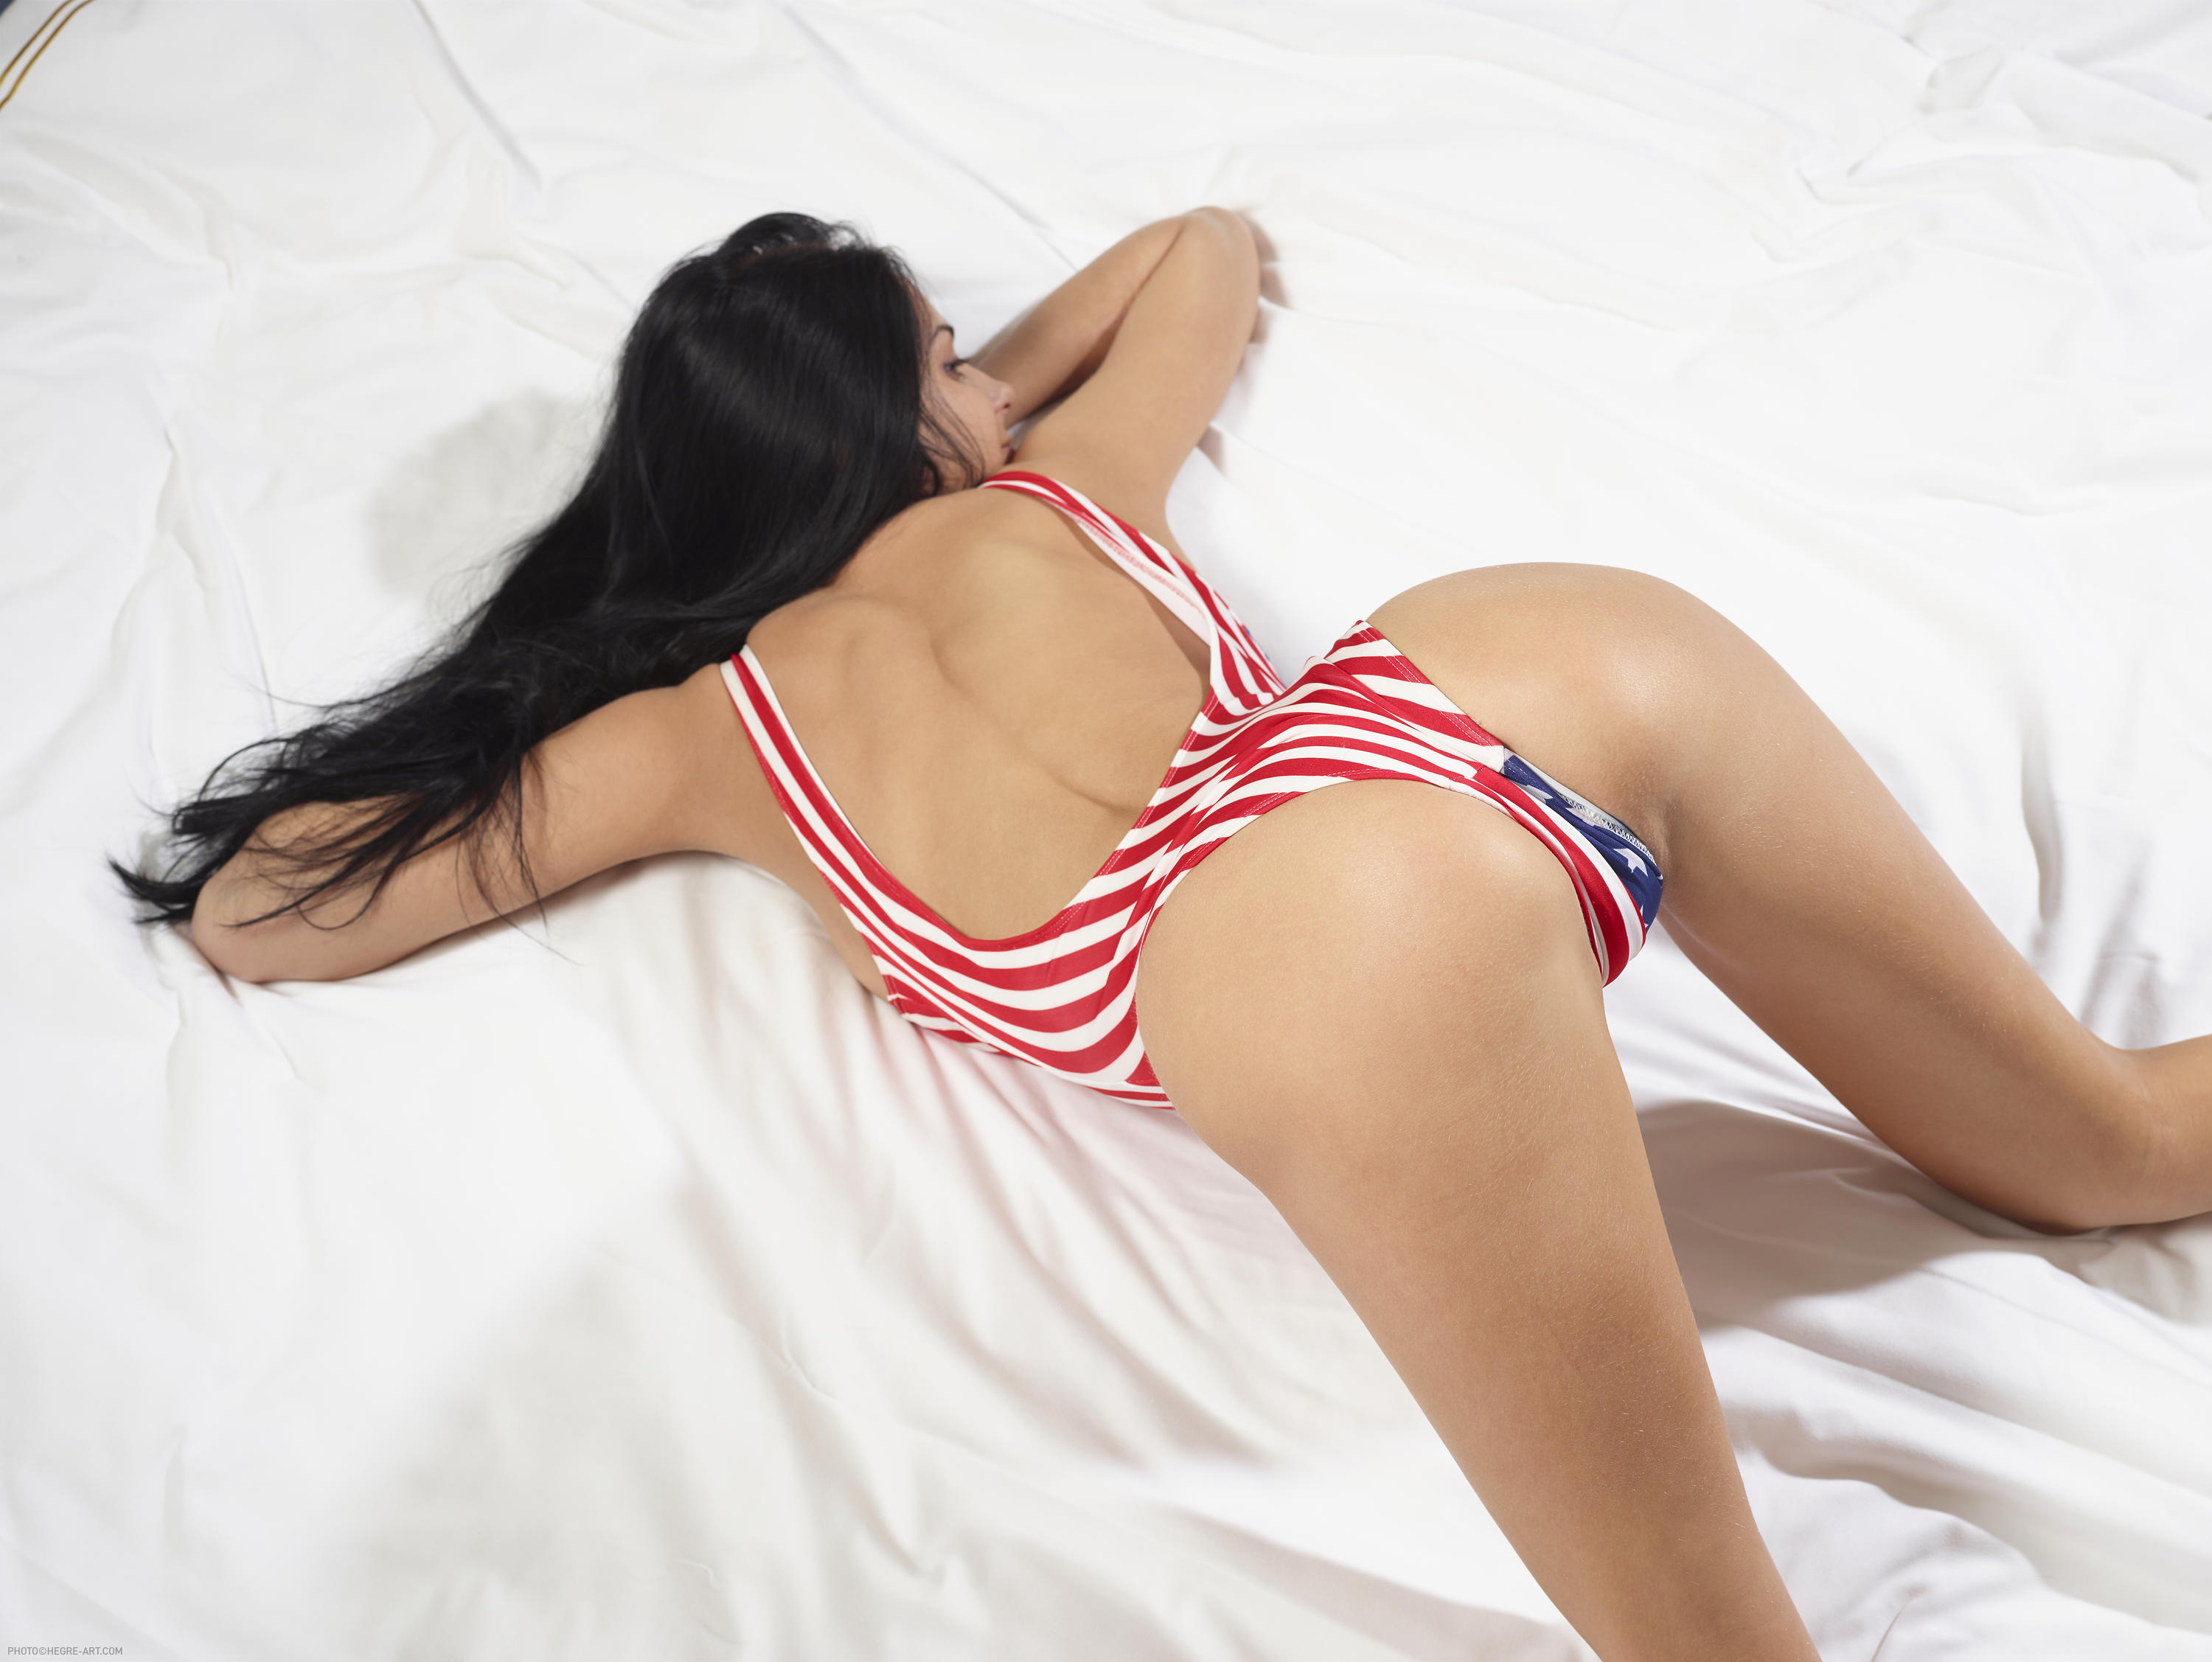 hot-bikiini-girl-4th-july-062